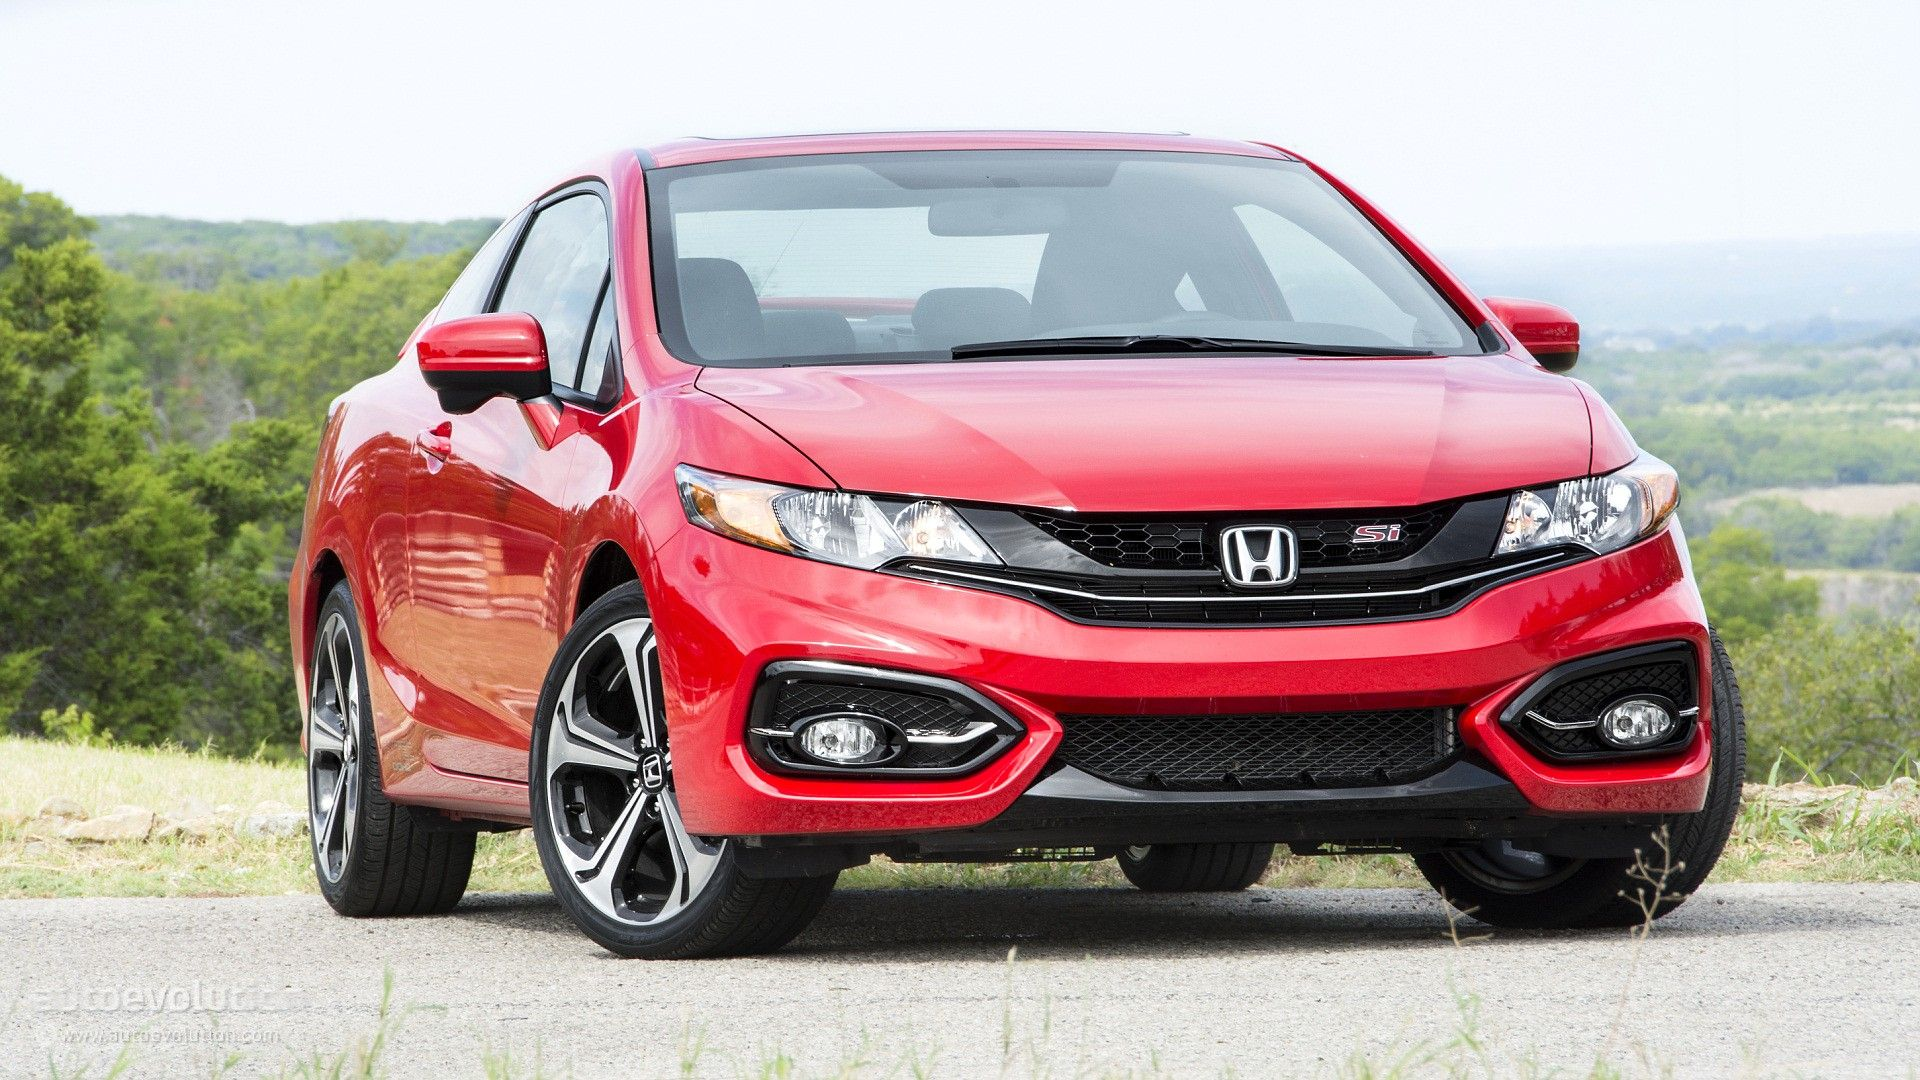 2015 honda civic si coupe review http www autoevolution com